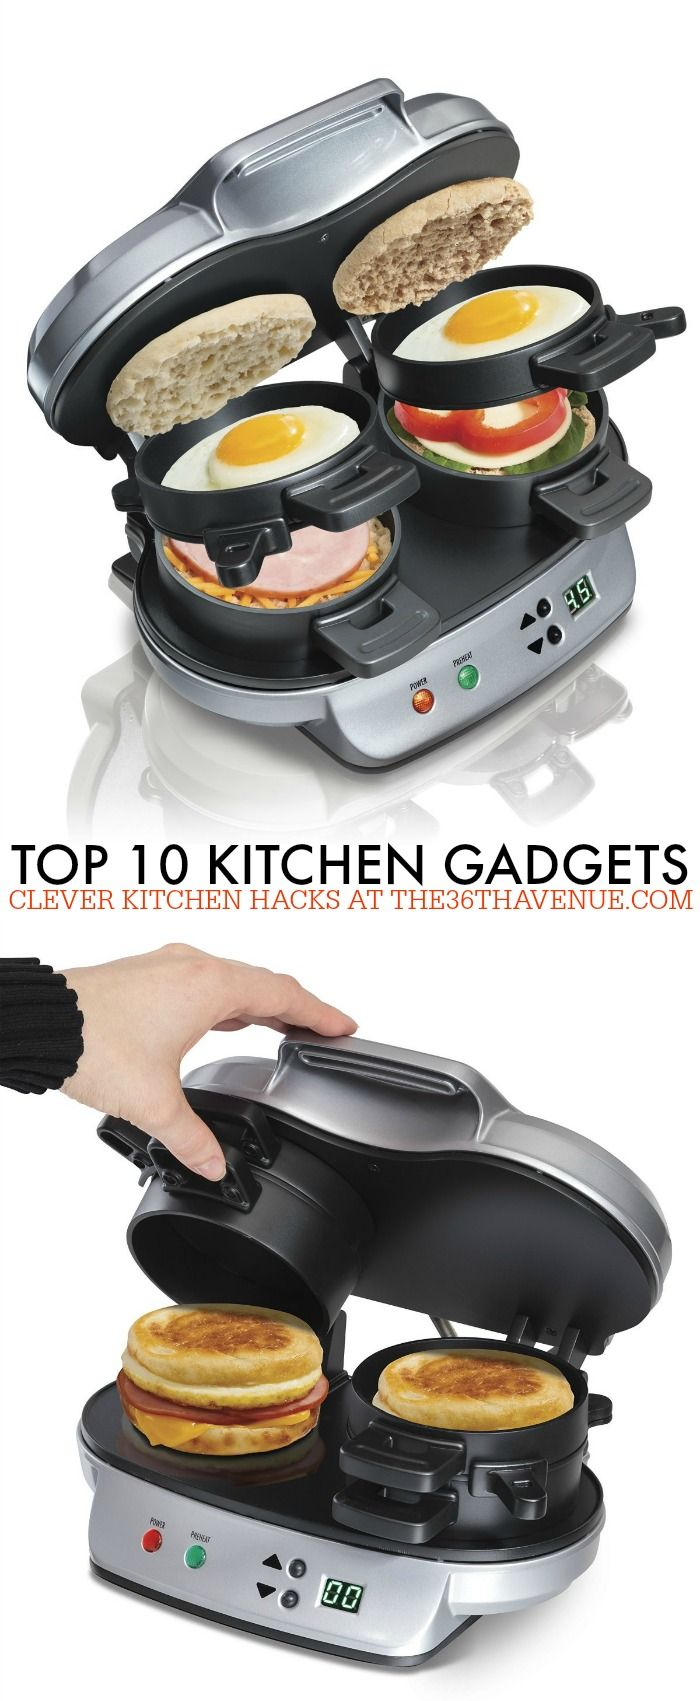 Top 10 Kitchen Gadgets | Clever gadgets, Kitchen gadgets and Gadget